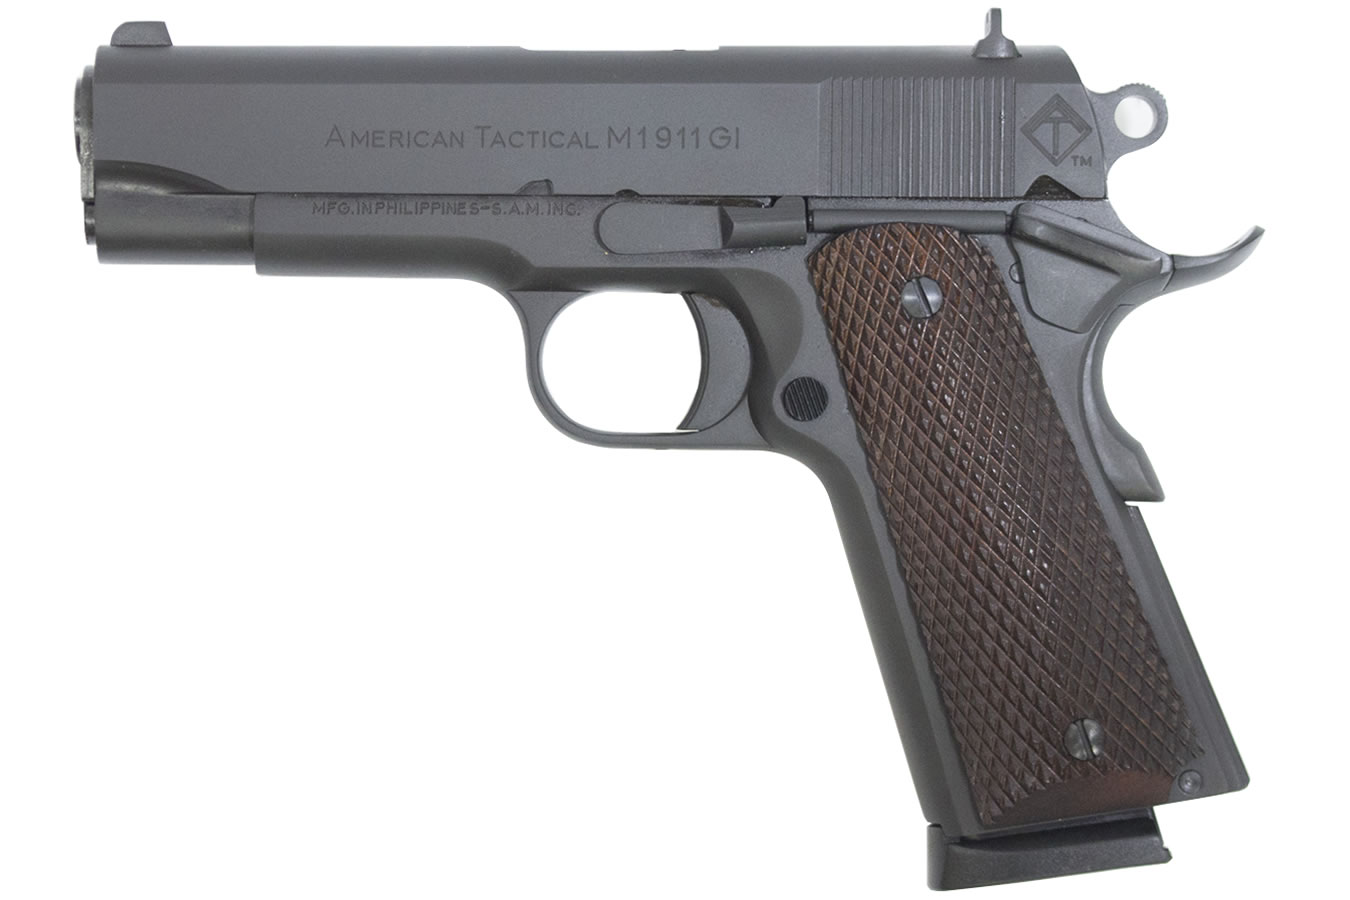 No. 15 Best Selling: ATI 1911 FIREPOWER EXTREME 45 ACP